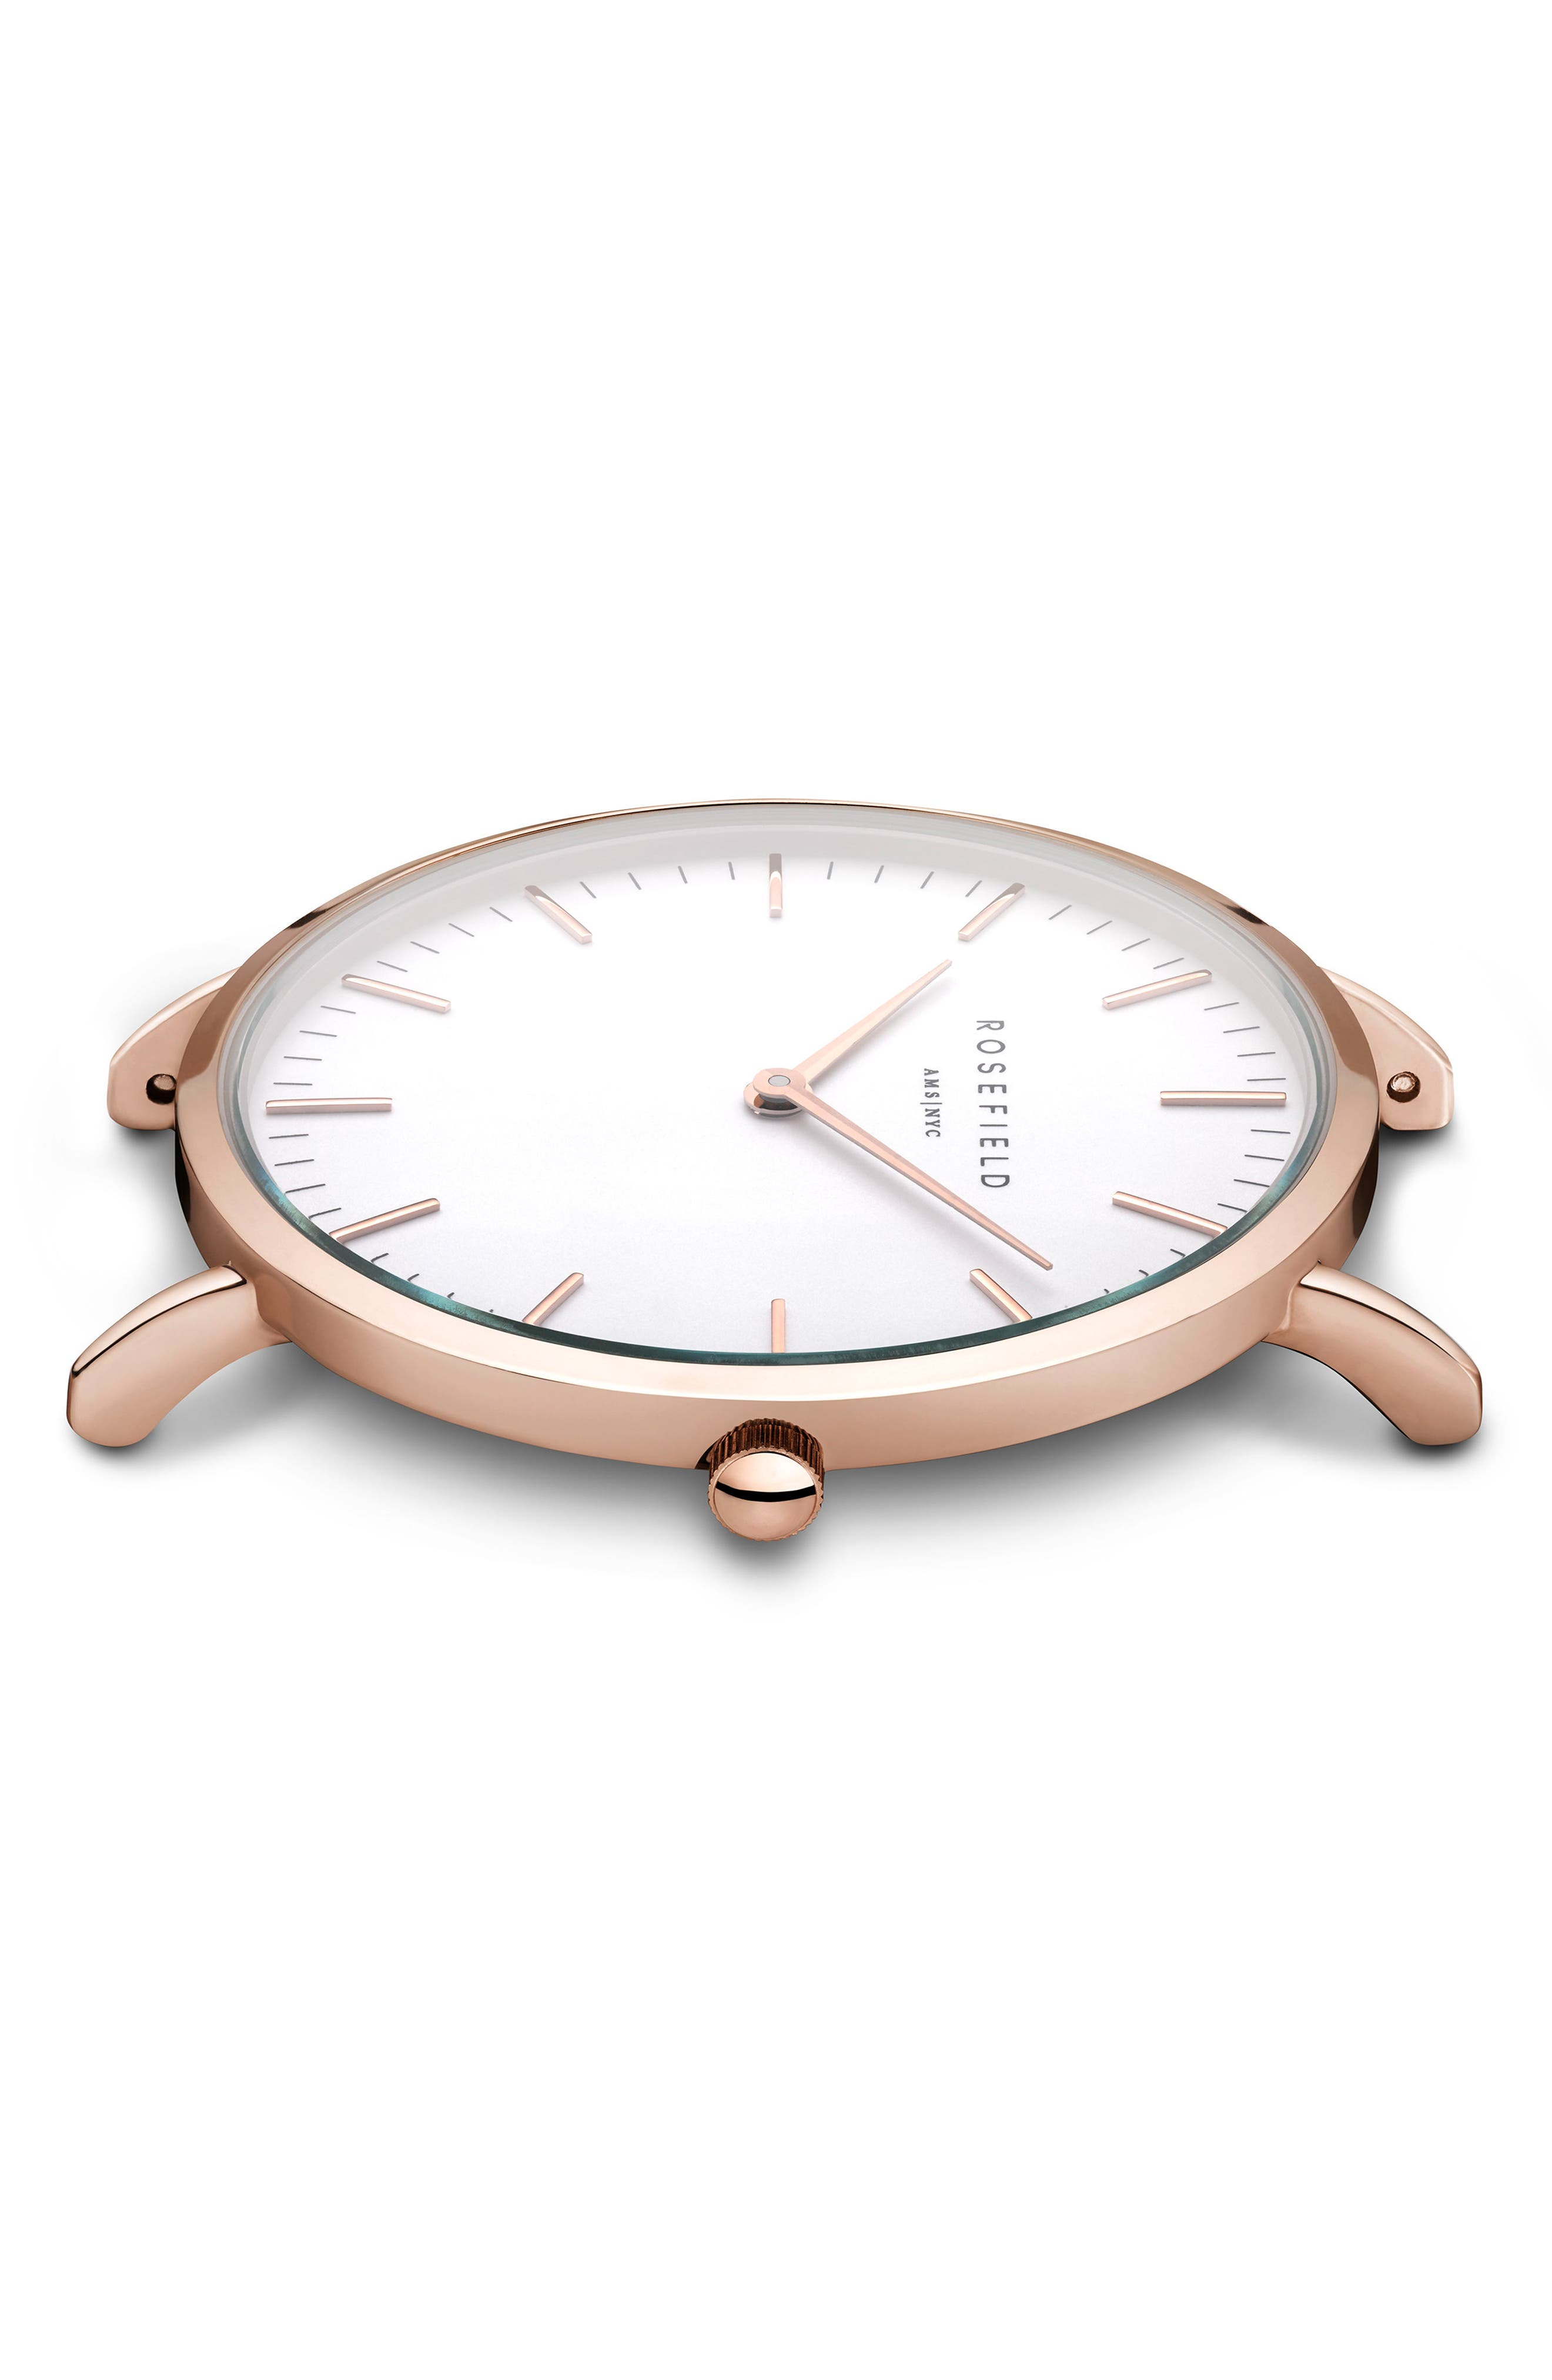 ROSEFIELD, Tribeca Leather Strap Watch, 33mm, Alternate thumbnail 3, color, GREY/ WHITE/ ROSE GOLD